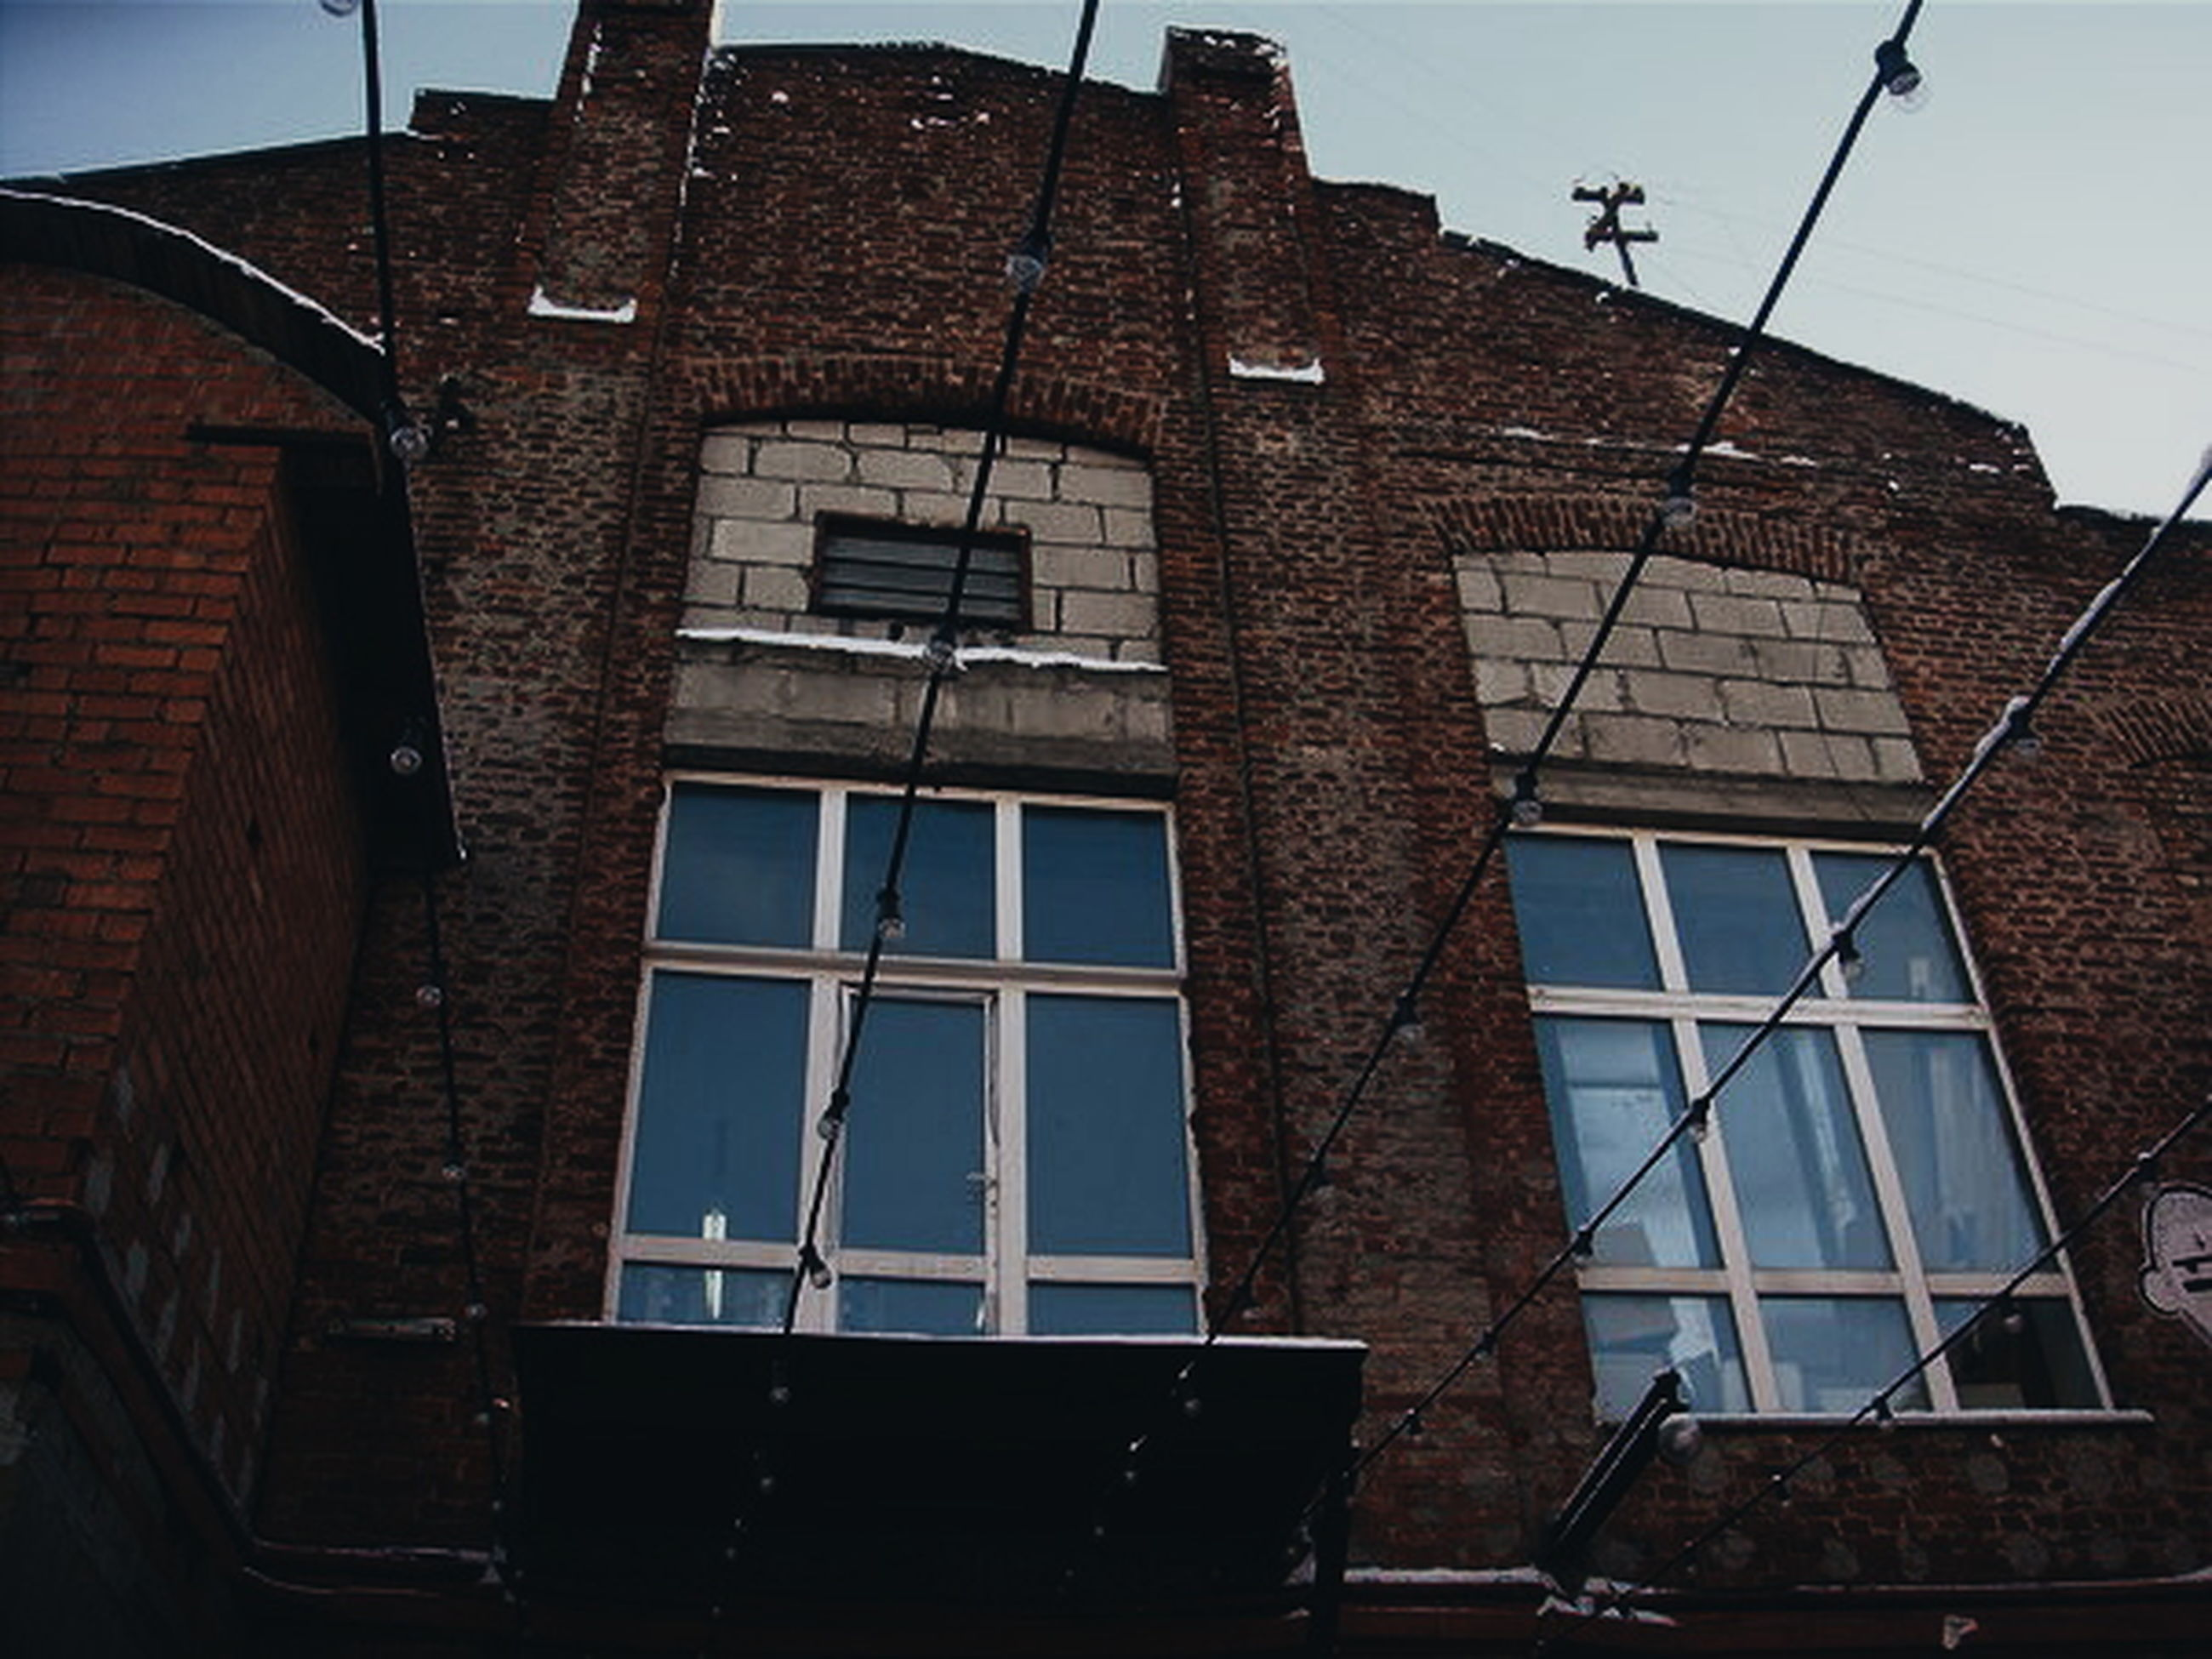 architecture, building exterior, built structure, low angle view, window, no people, clear sky, city, day, outdoors, sky